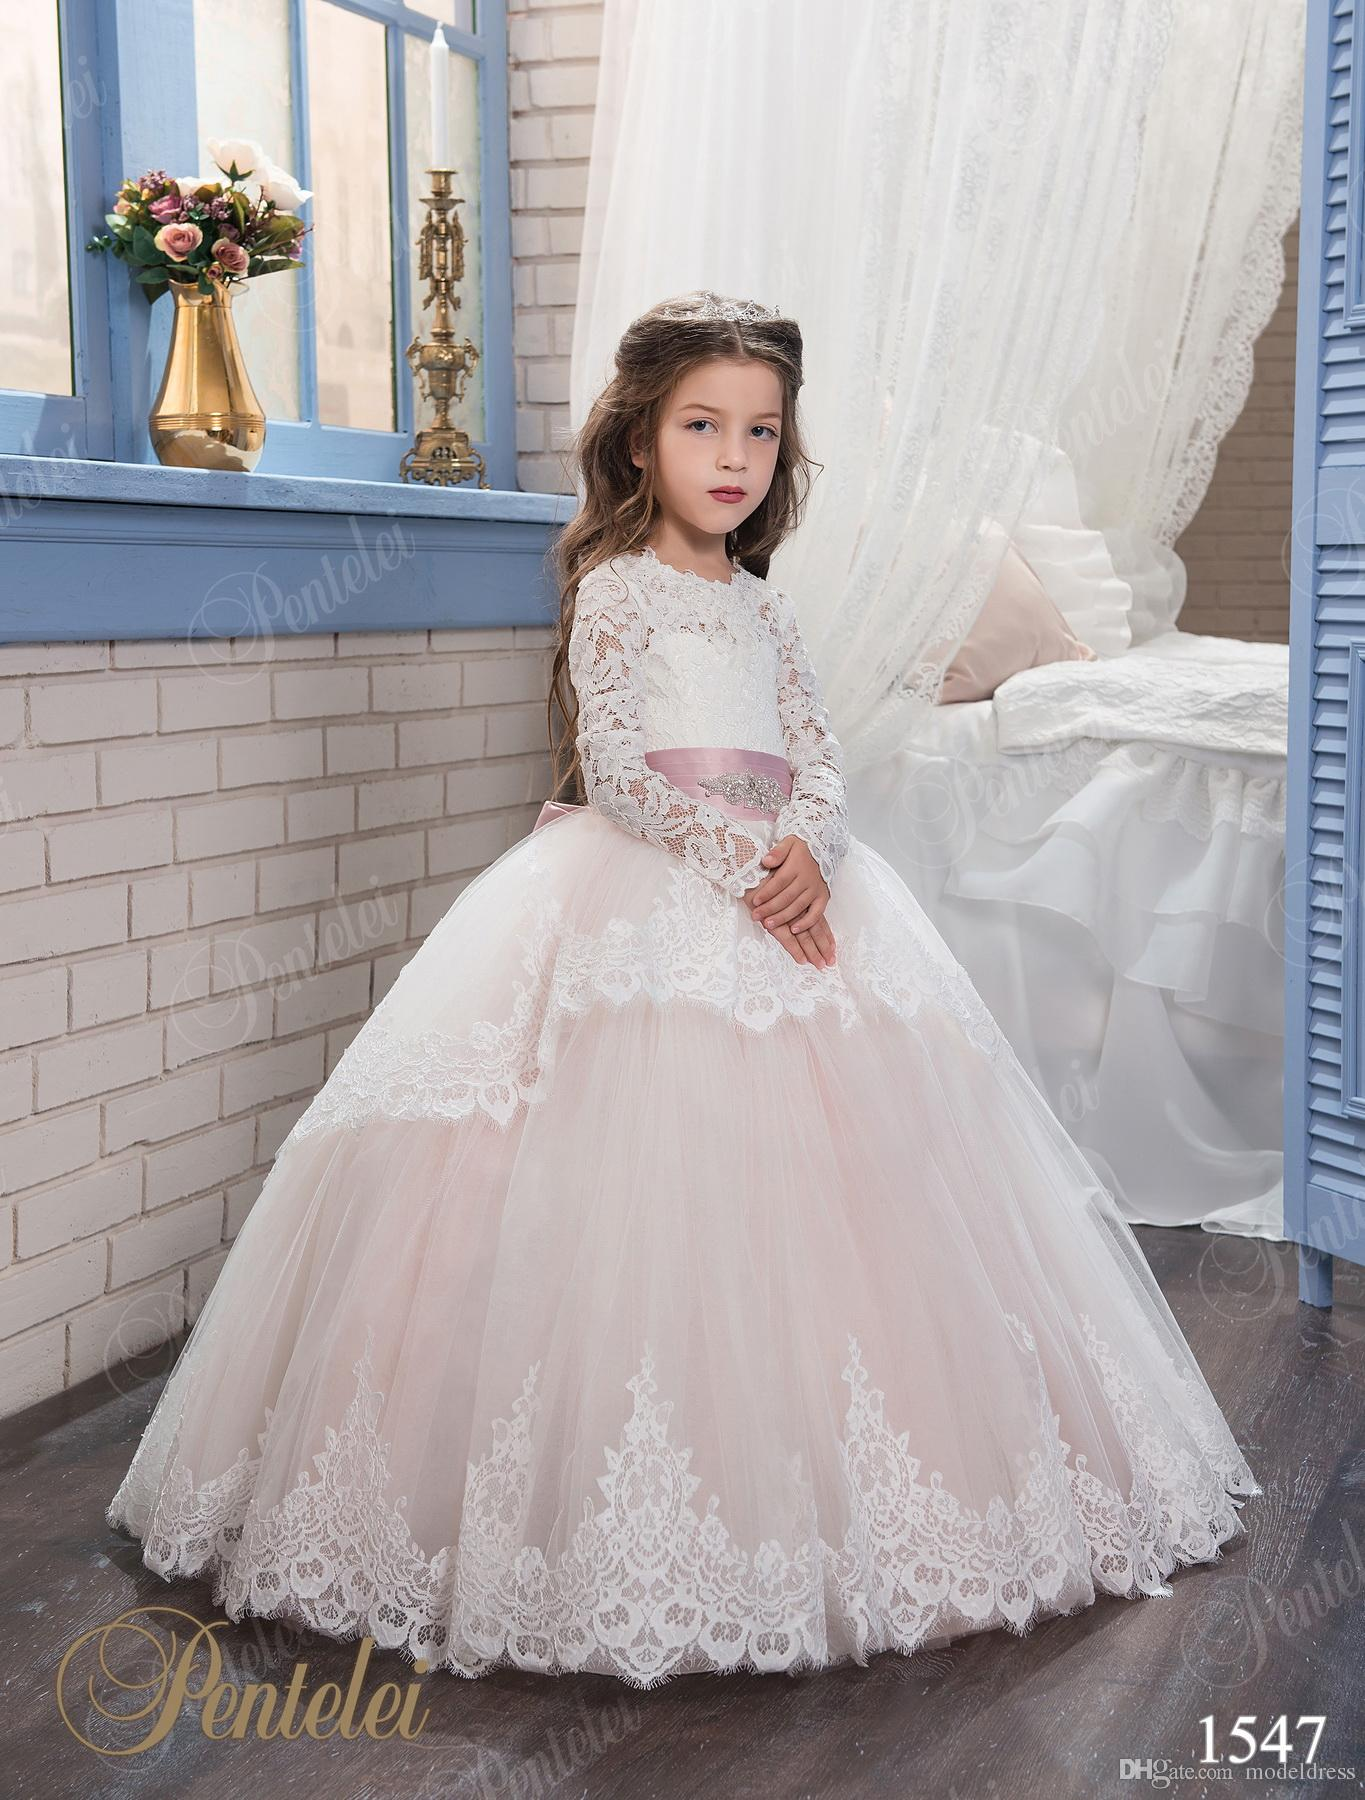 2017 New Princess Lace Flower Girl Dresses For Weddings Long Sleeves Ball Gown Formal First Communion Dress Child Party Formal Wear Gowns